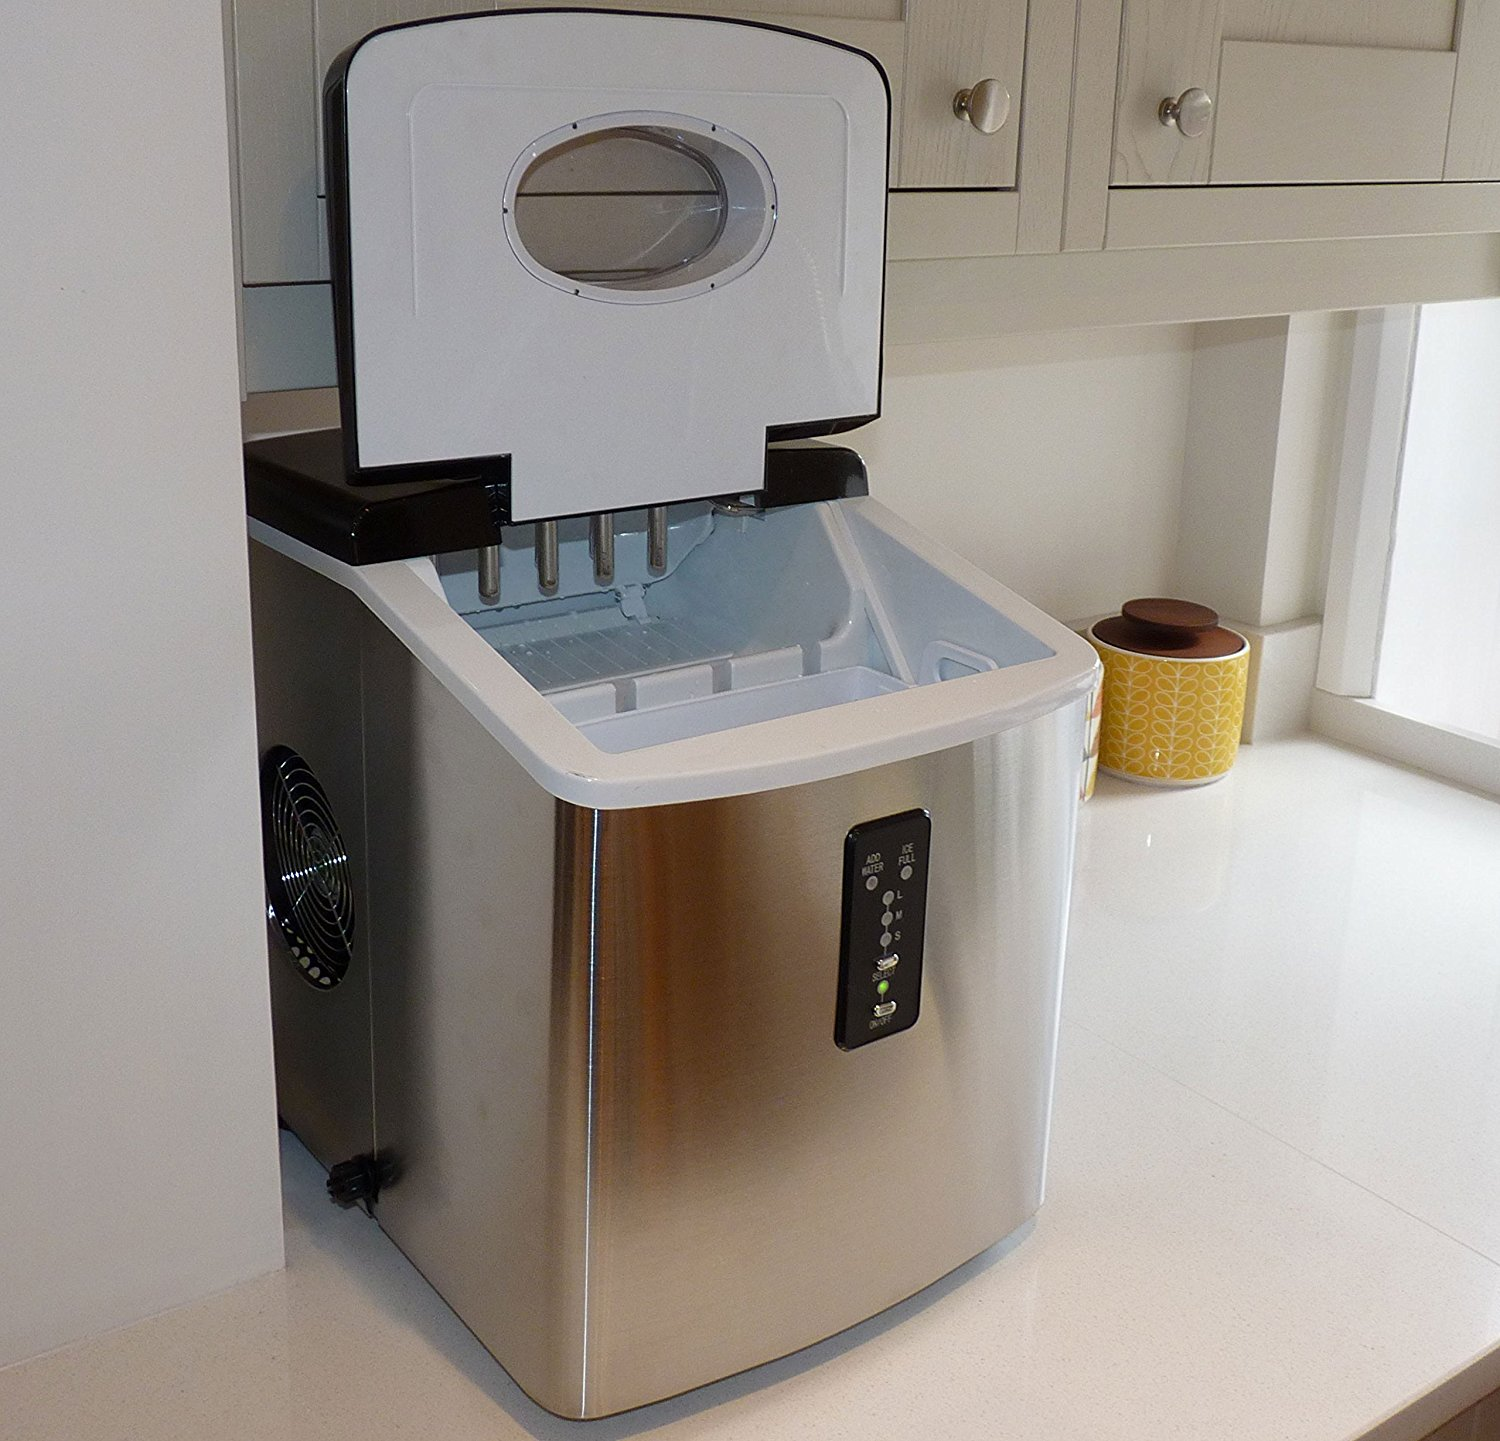 Countertop Ice Maker Walmart Best Countertop Portable Ice Maker May 2019 Winners And Losers